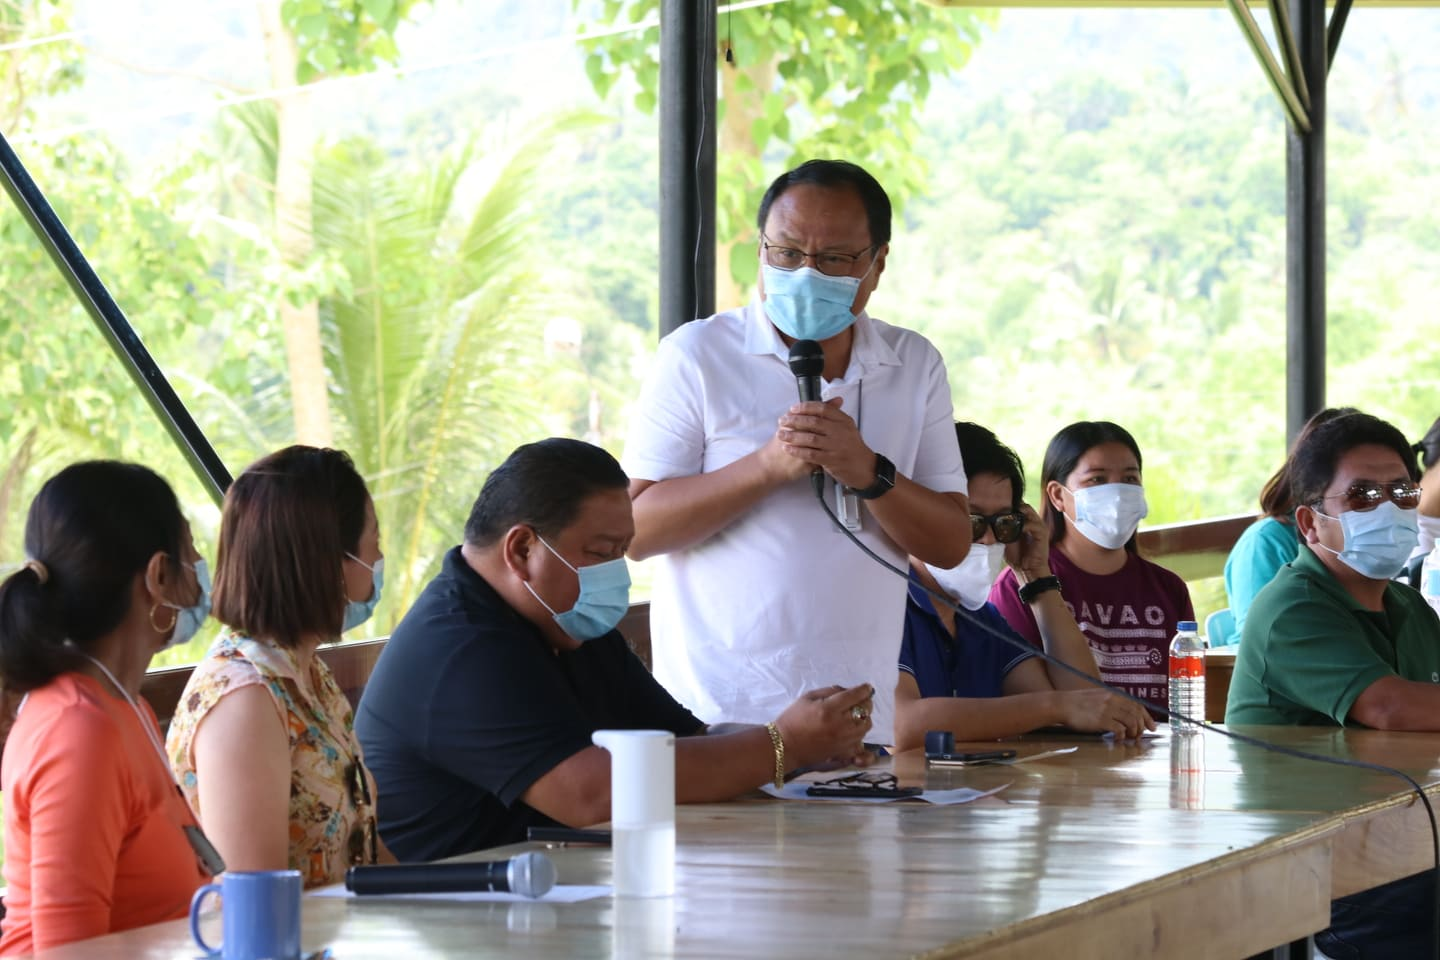 Cong. PJ opens livelihood program for 3rd District